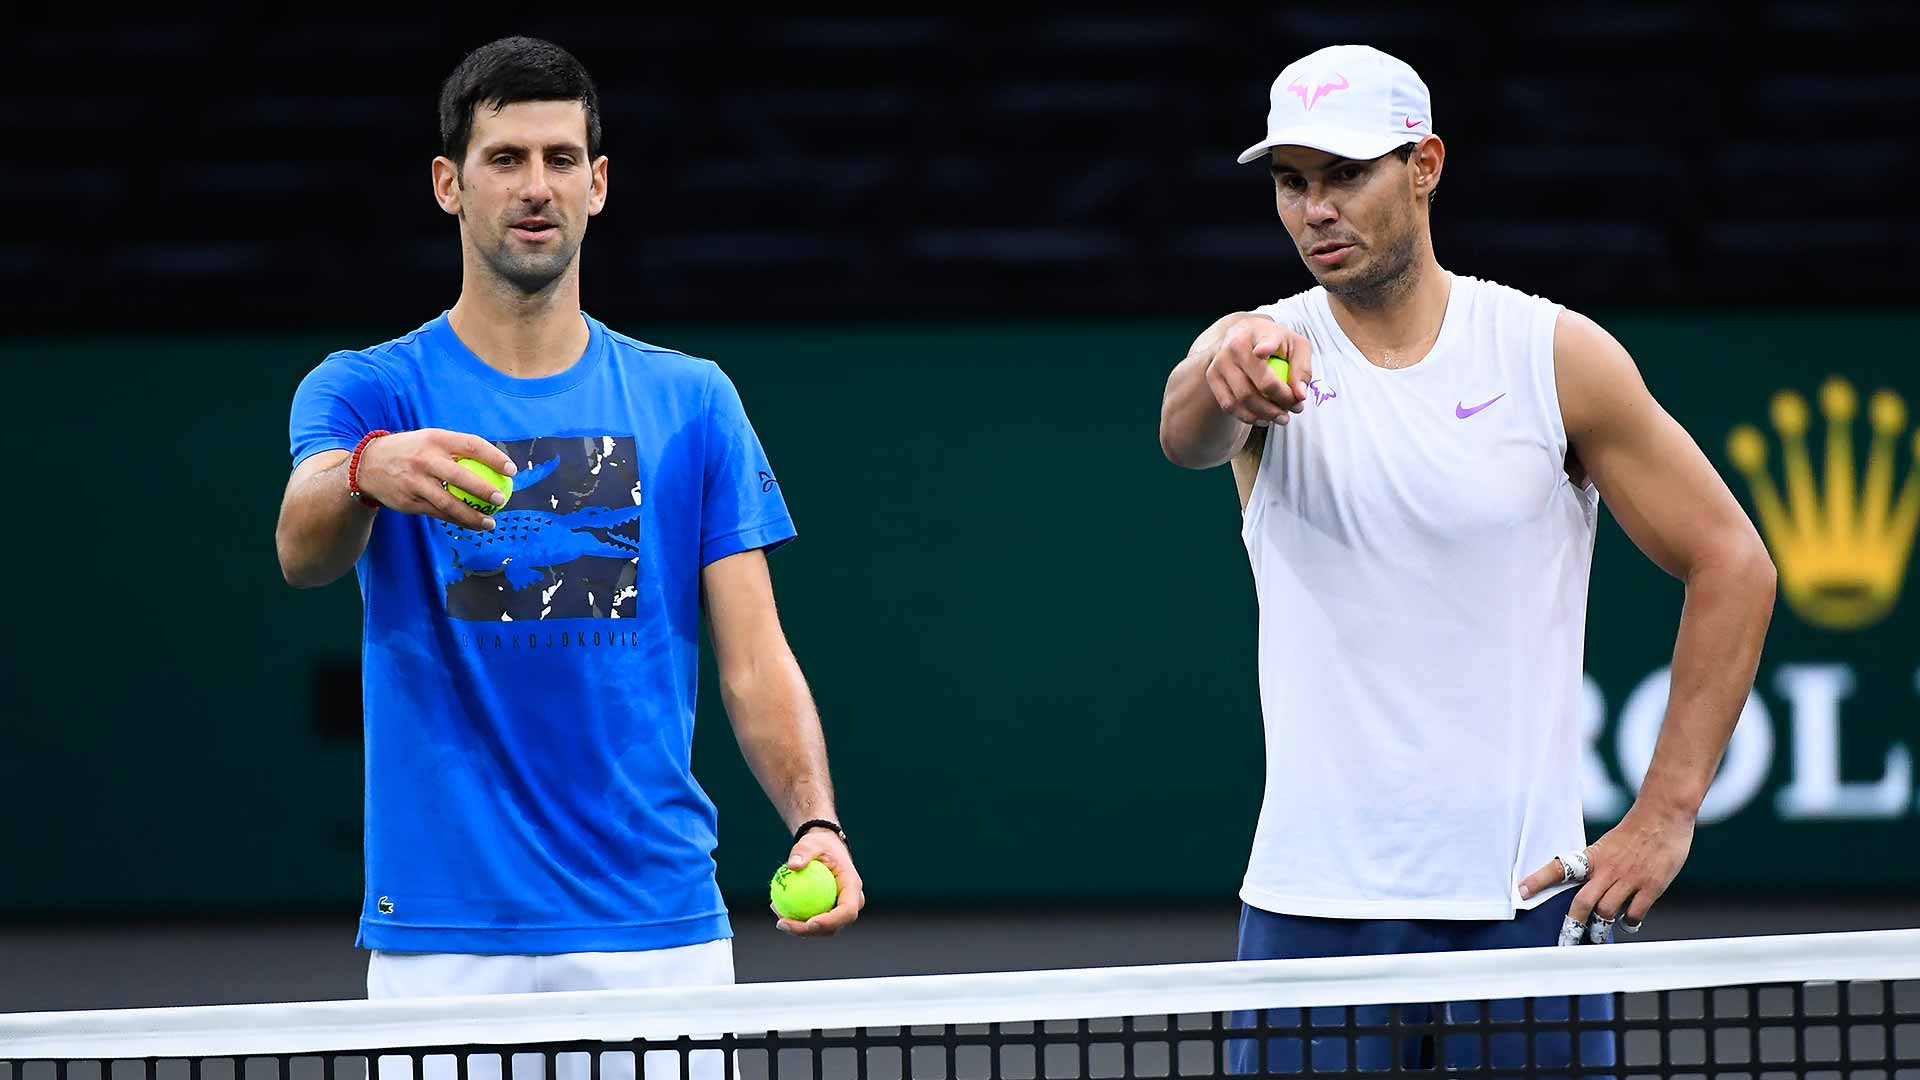 Novak Djokovic and Rafael Nadal practise together ahead of the Rolex Paris Masters.